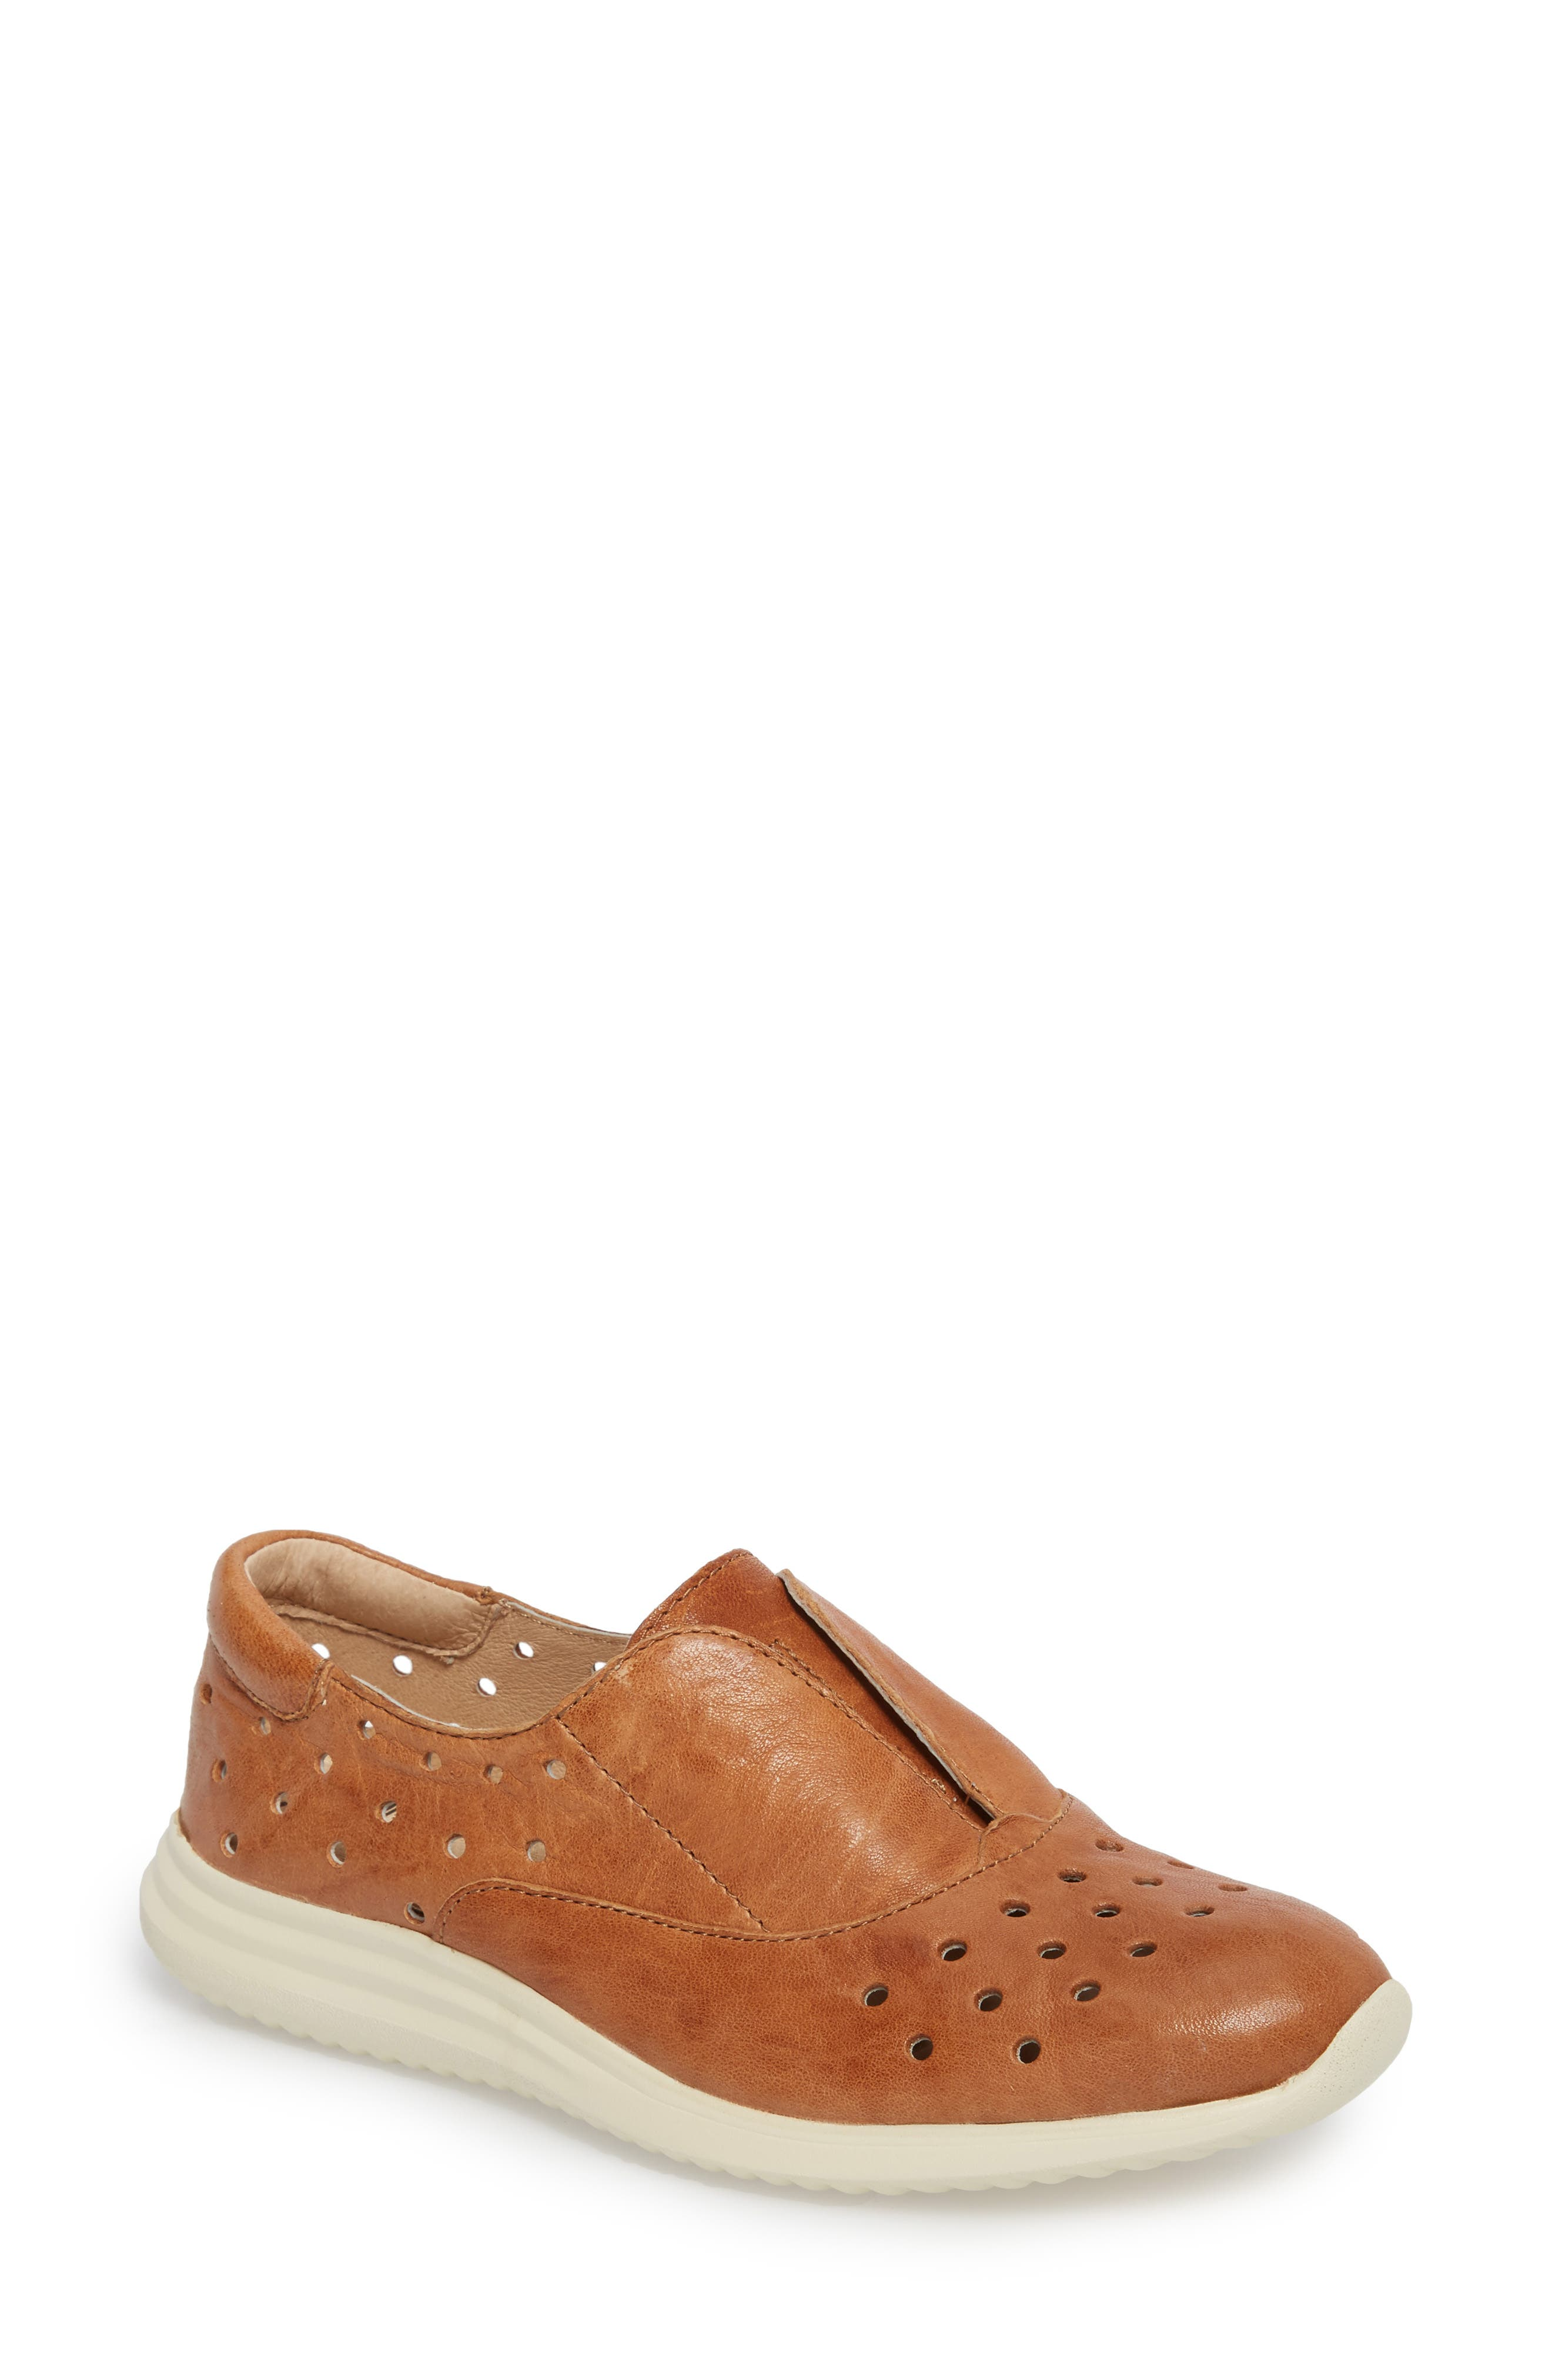 Noreen Slip-On Sneaker,                         Main,                         color, Luggage Leather